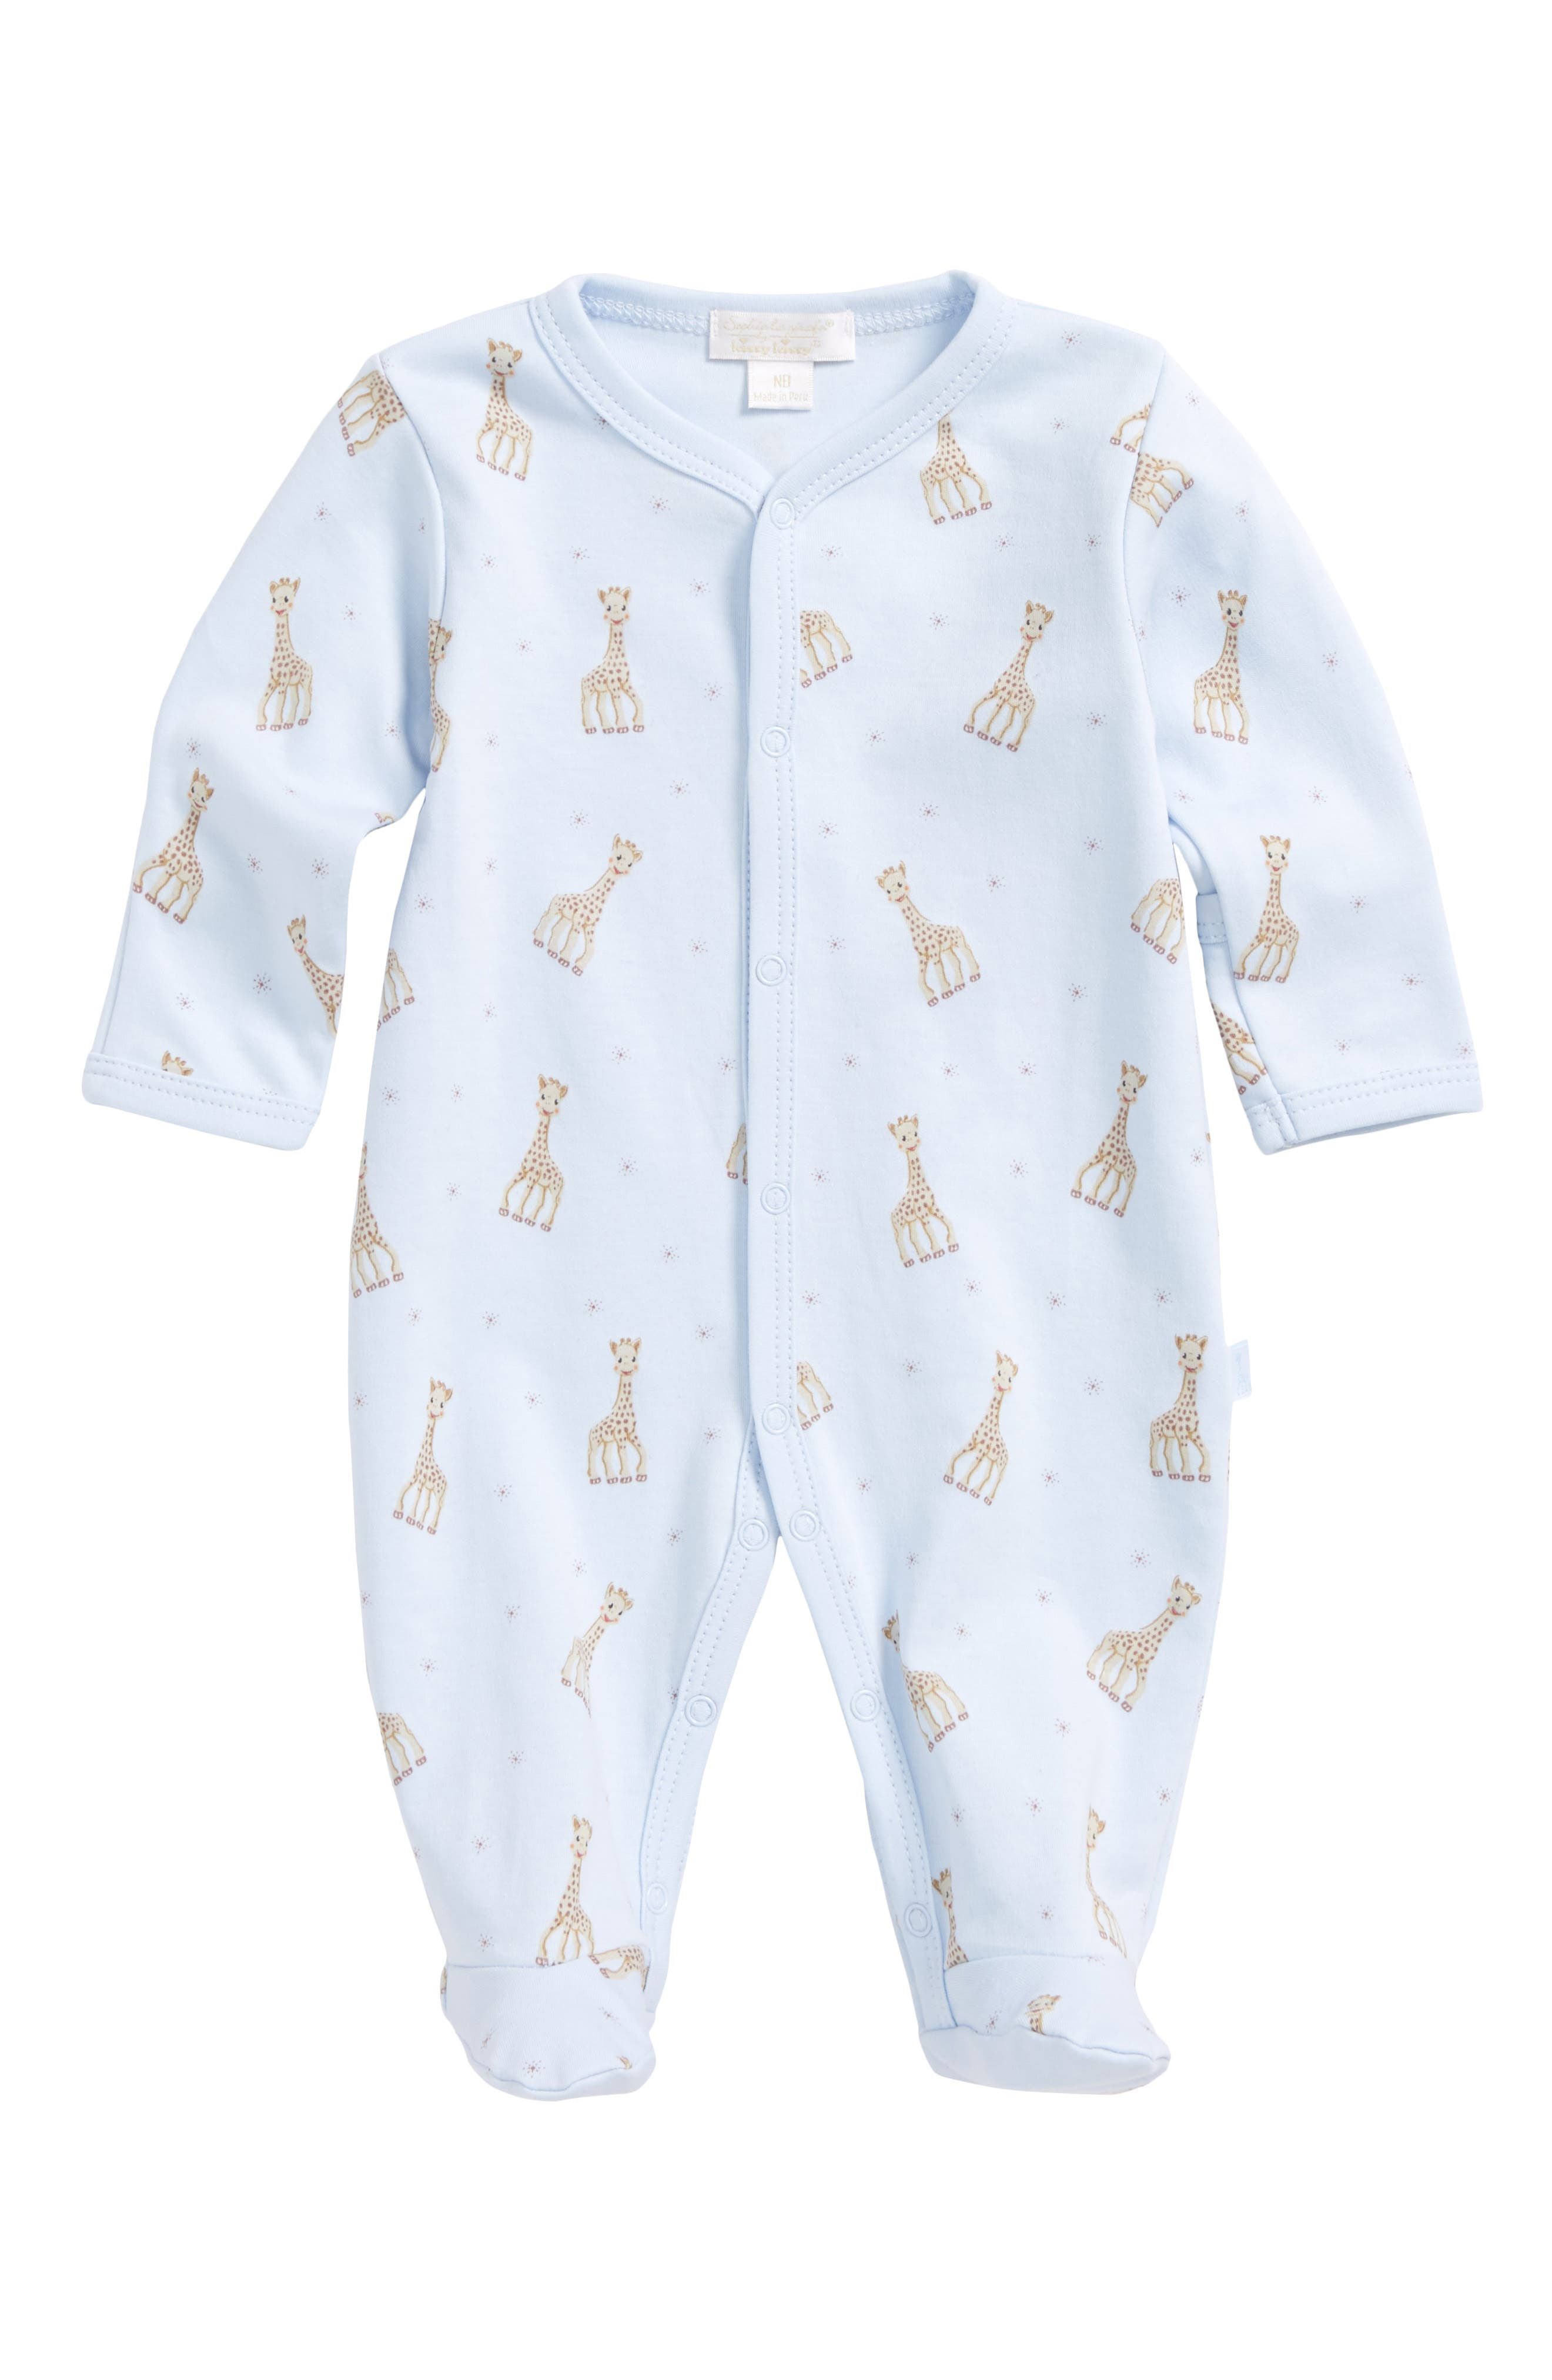 x Sophie la Girafe Print Footie,                             Main thumbnail 1, color,                             LIGHT BLUE PRINT